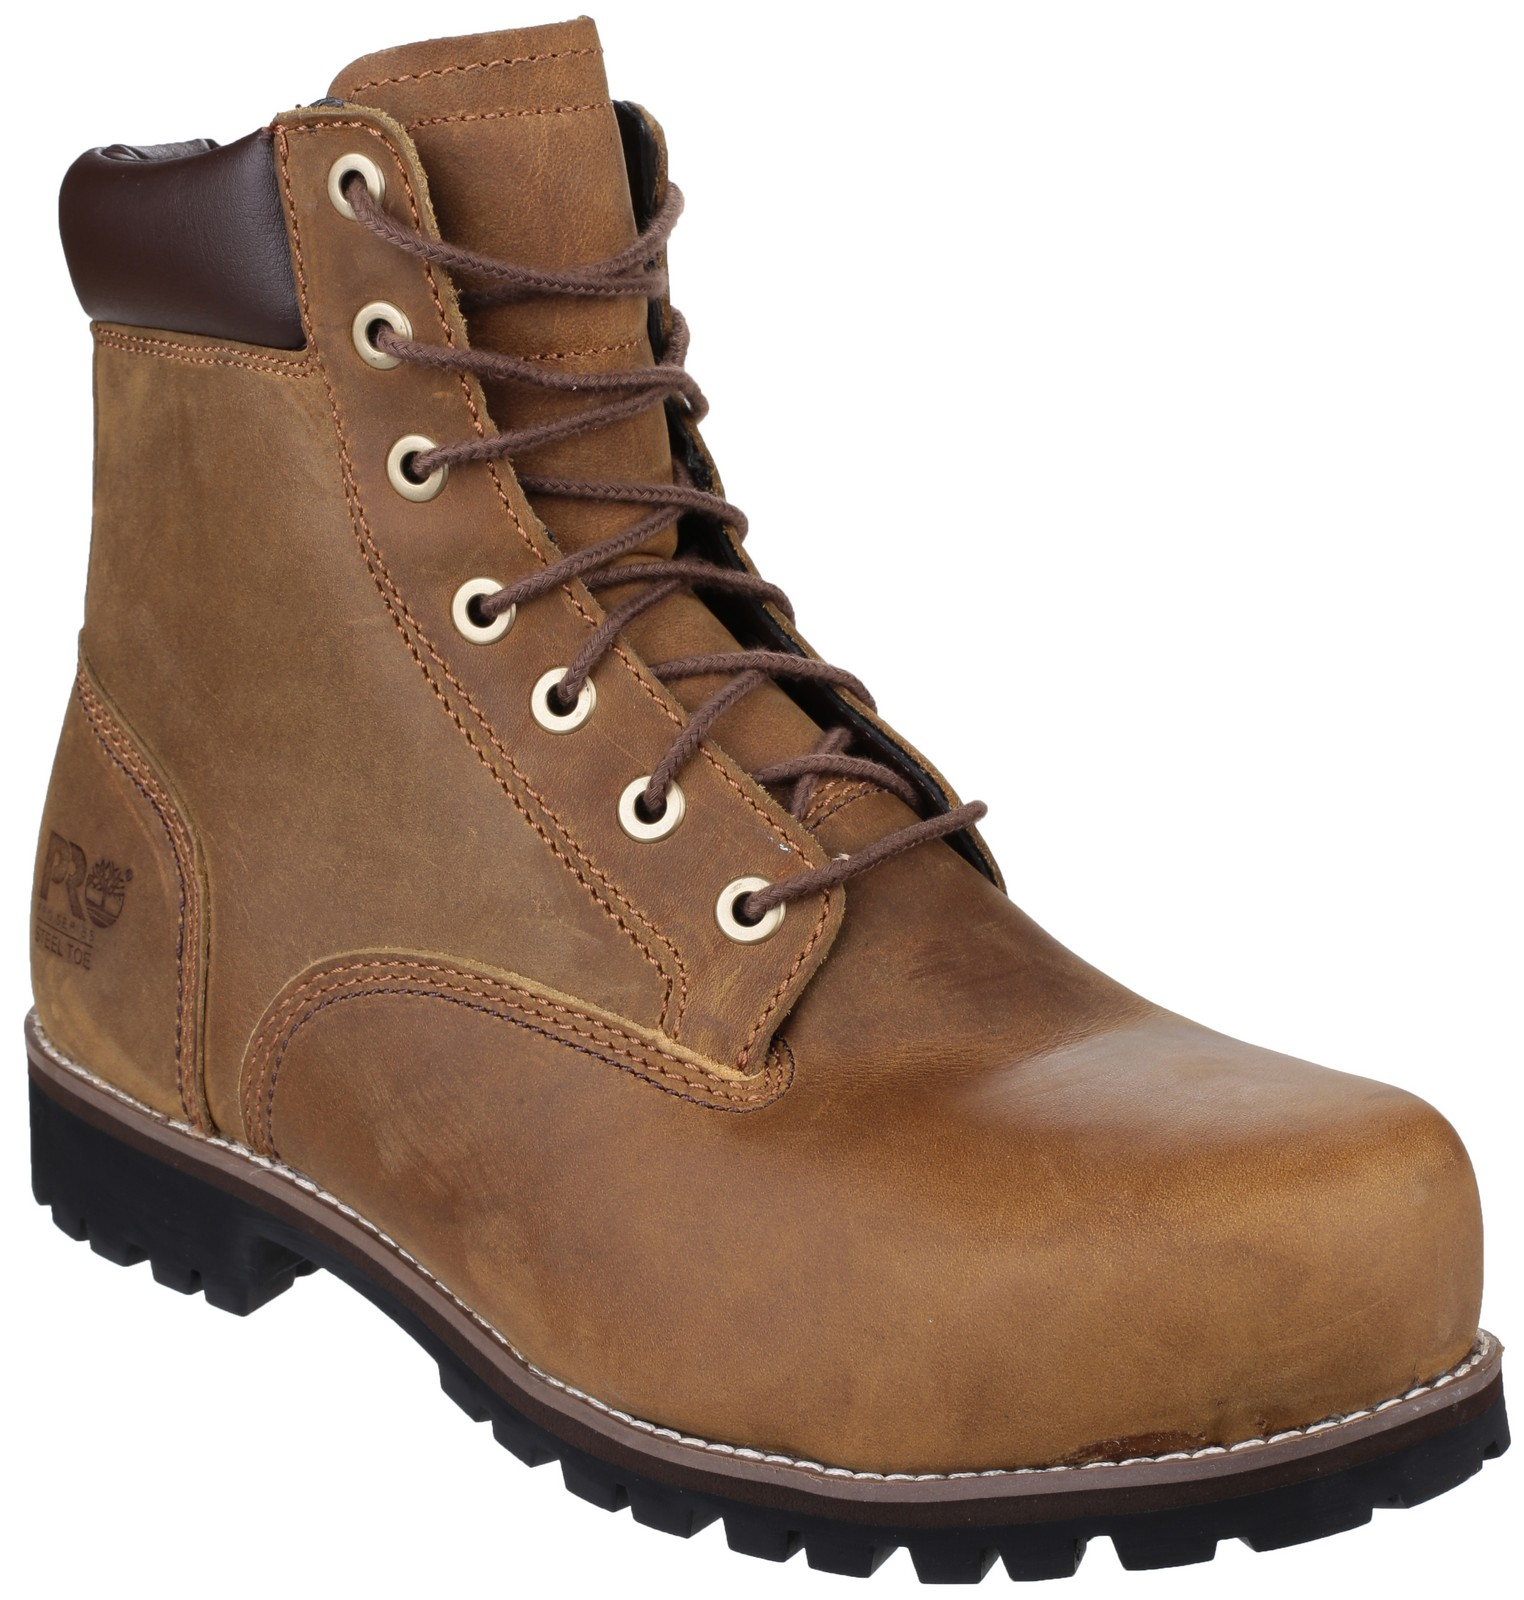 Timberland Pro Eagle Safety Boots